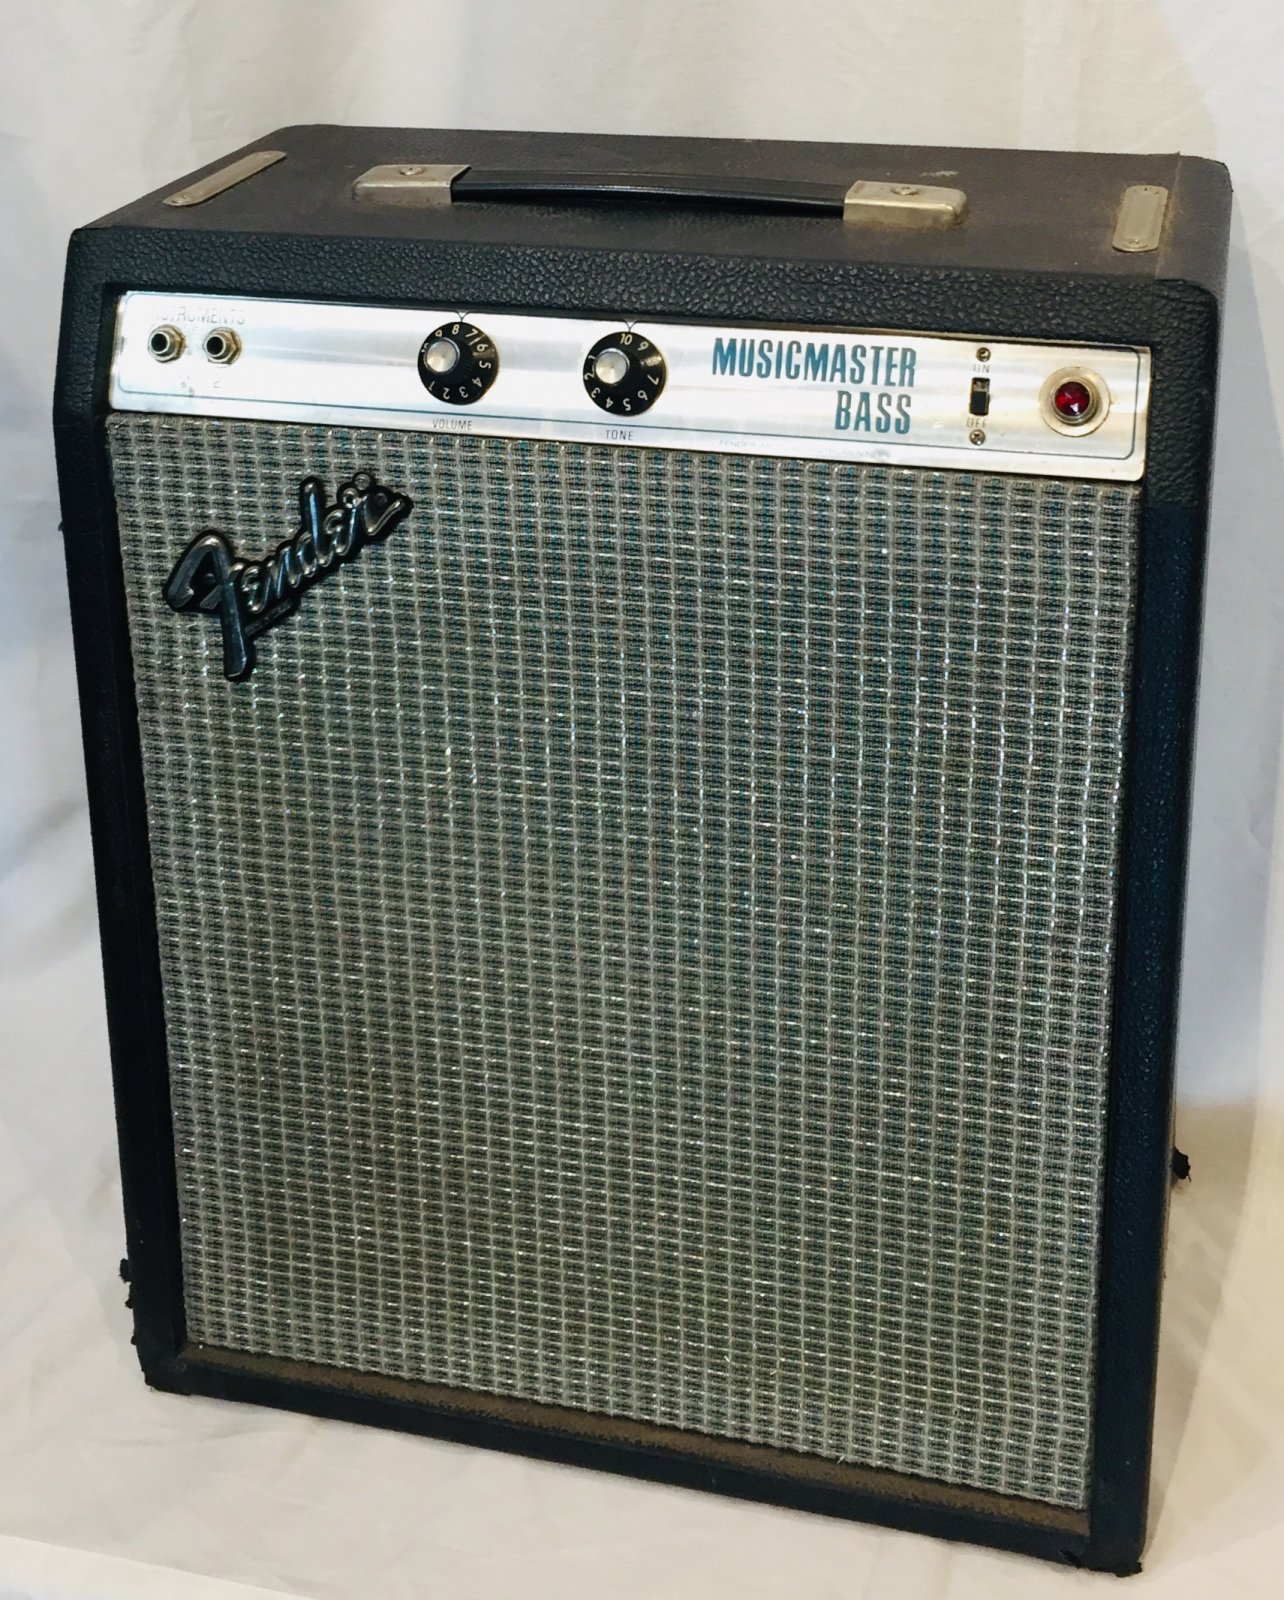 FENDER MUSICMASTER BASS AMPLIFIER